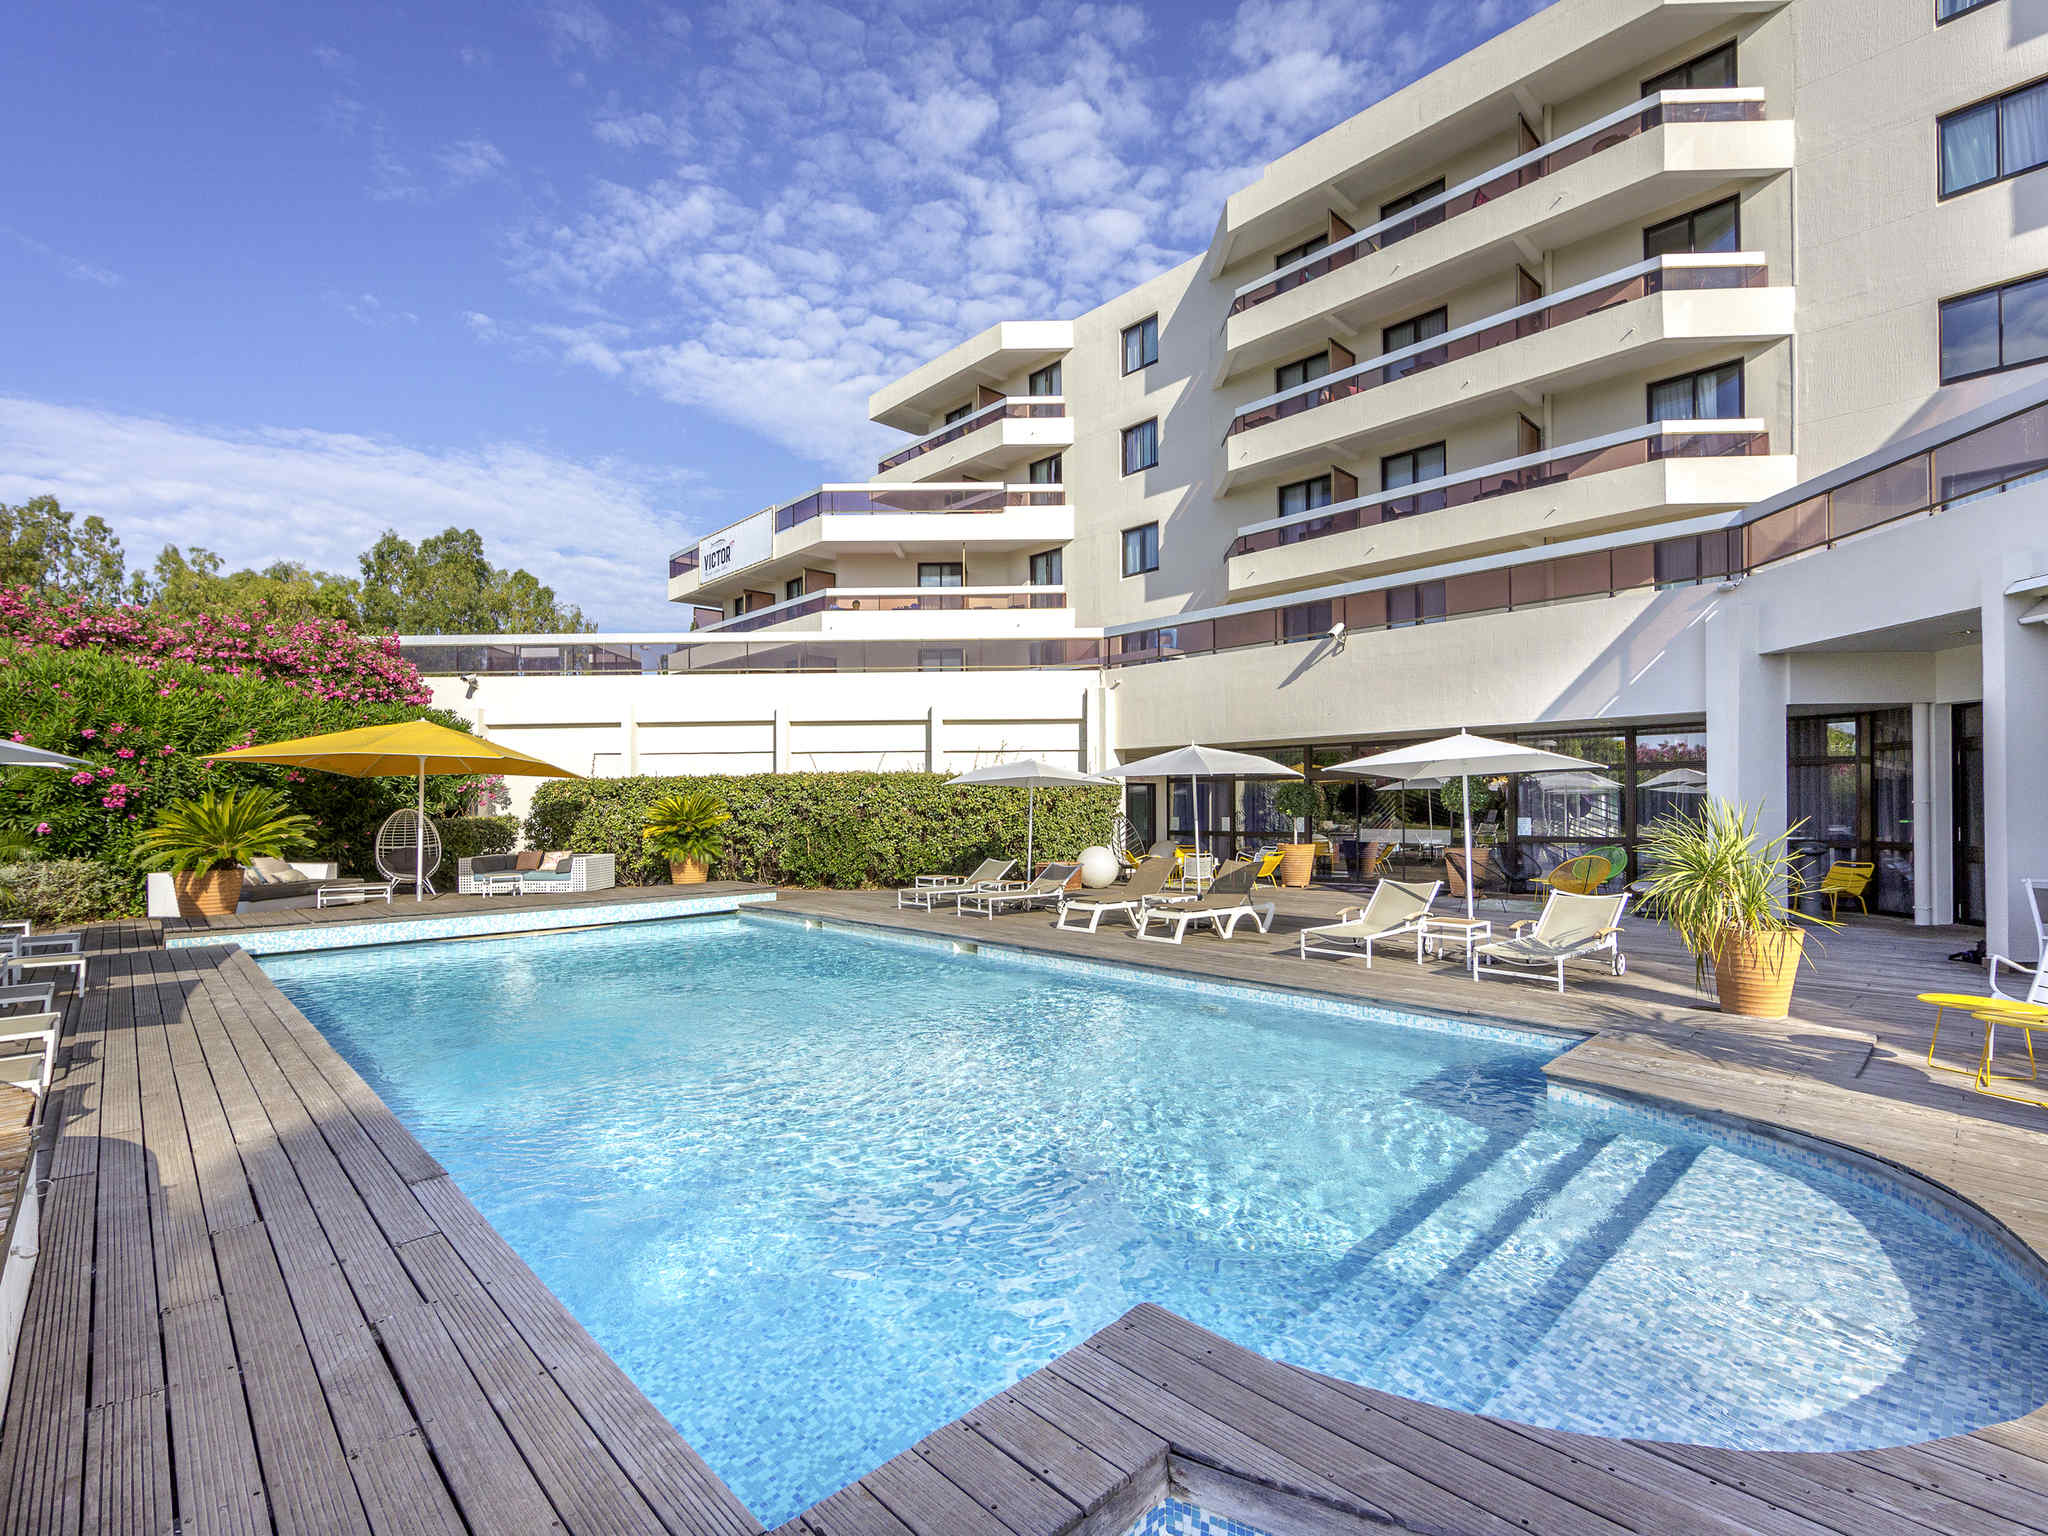 Hotel – Hotel Mercure Hyeres Centre